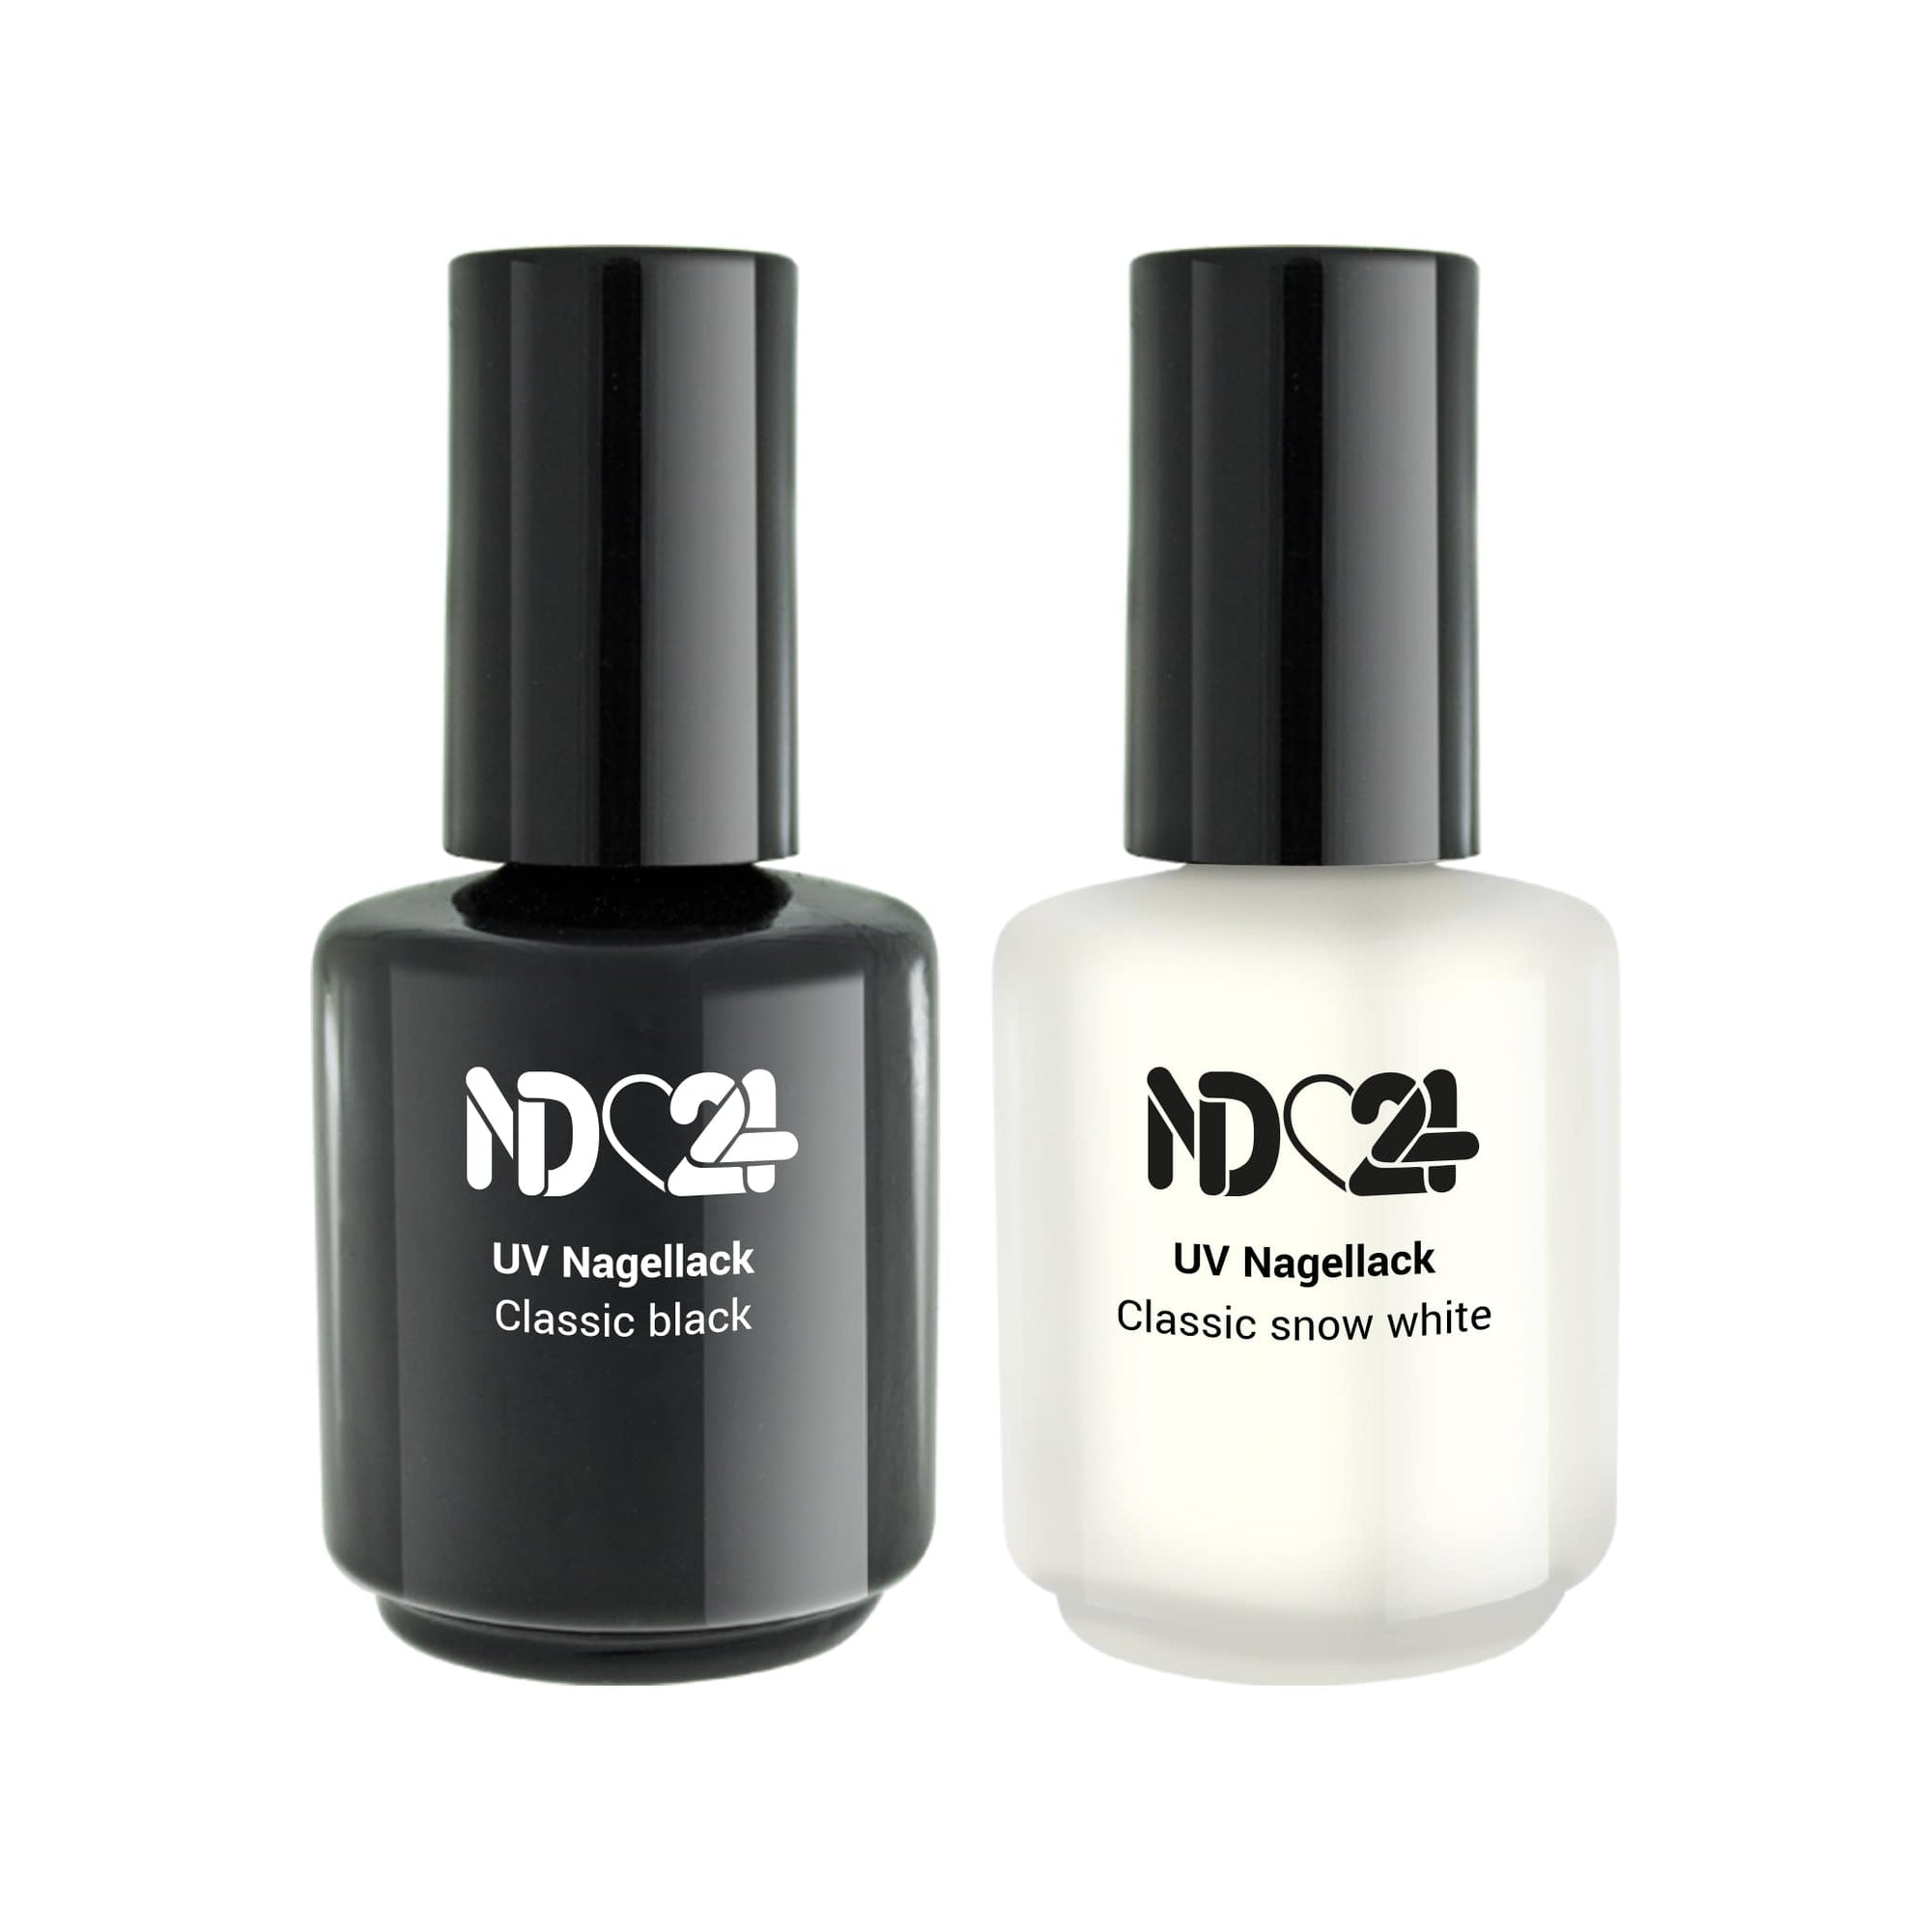 UV Nagellack Black & White Collection